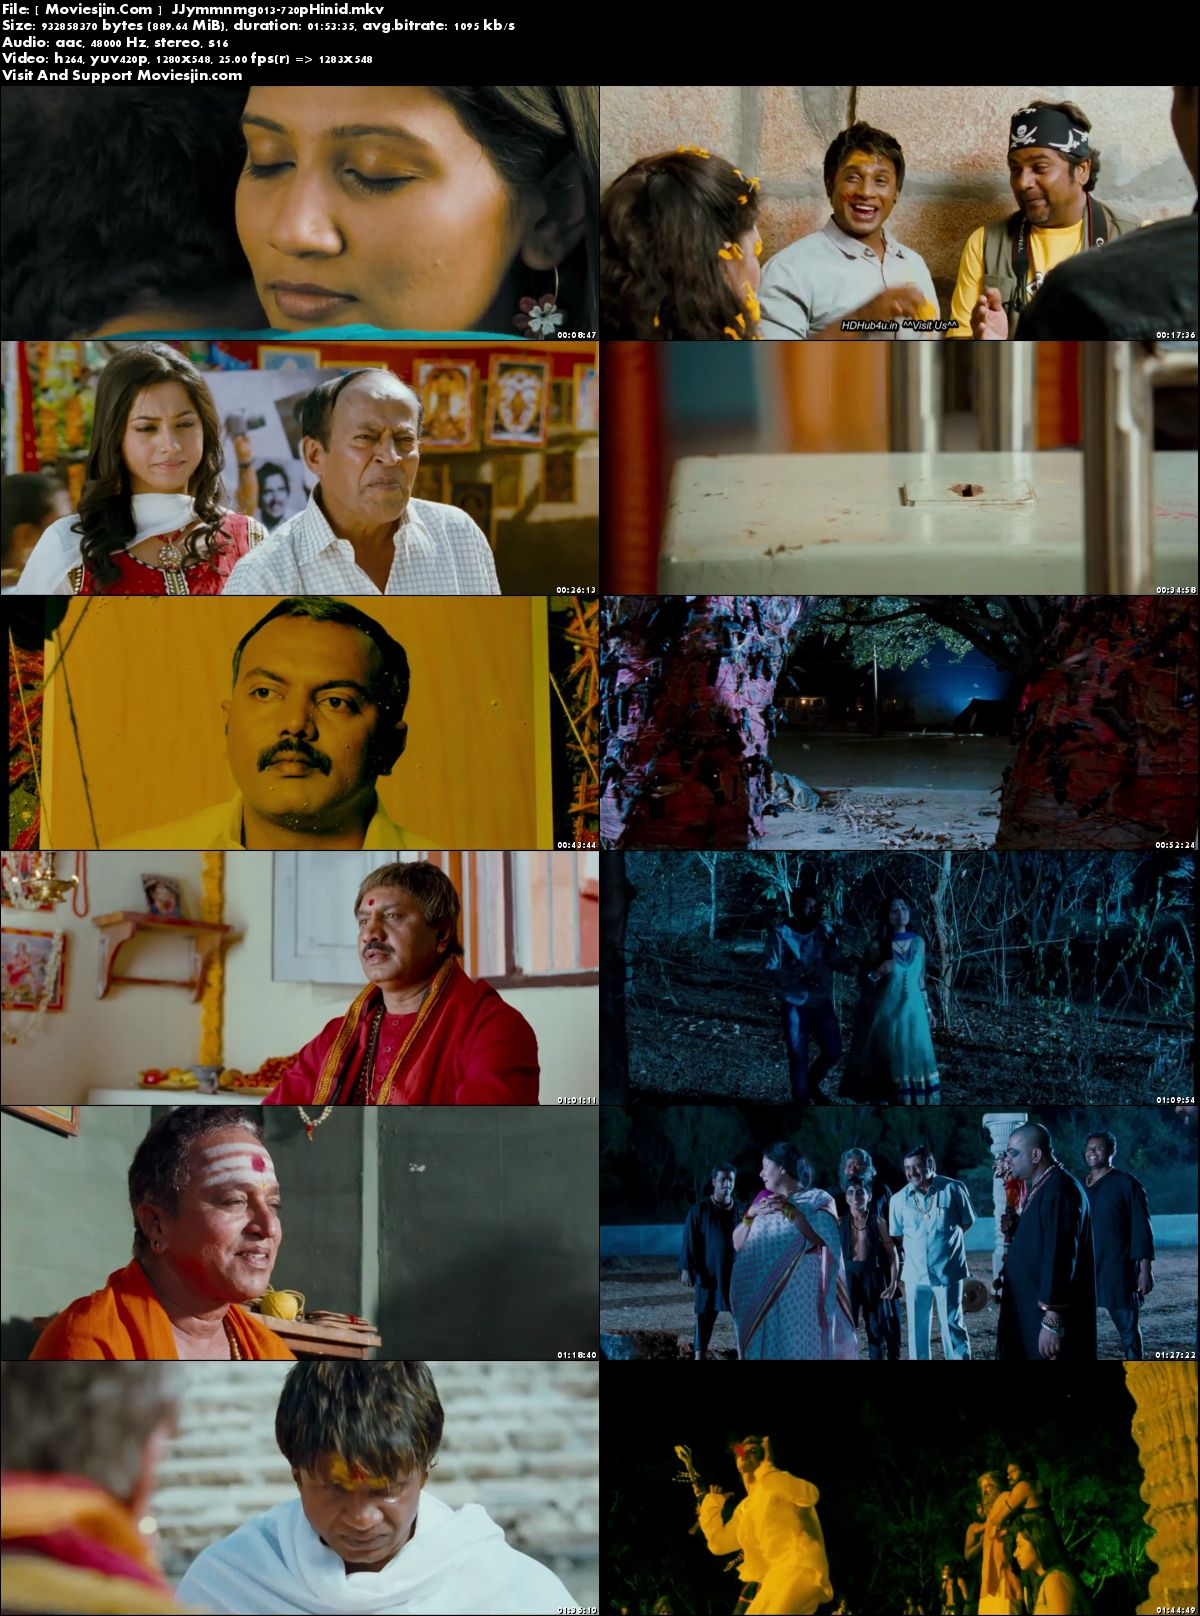 Watch Online Shaktishali No 1 2018 Movie HDRip Hindi Dubbed 890MB 720p Full Movie Download mkvcage